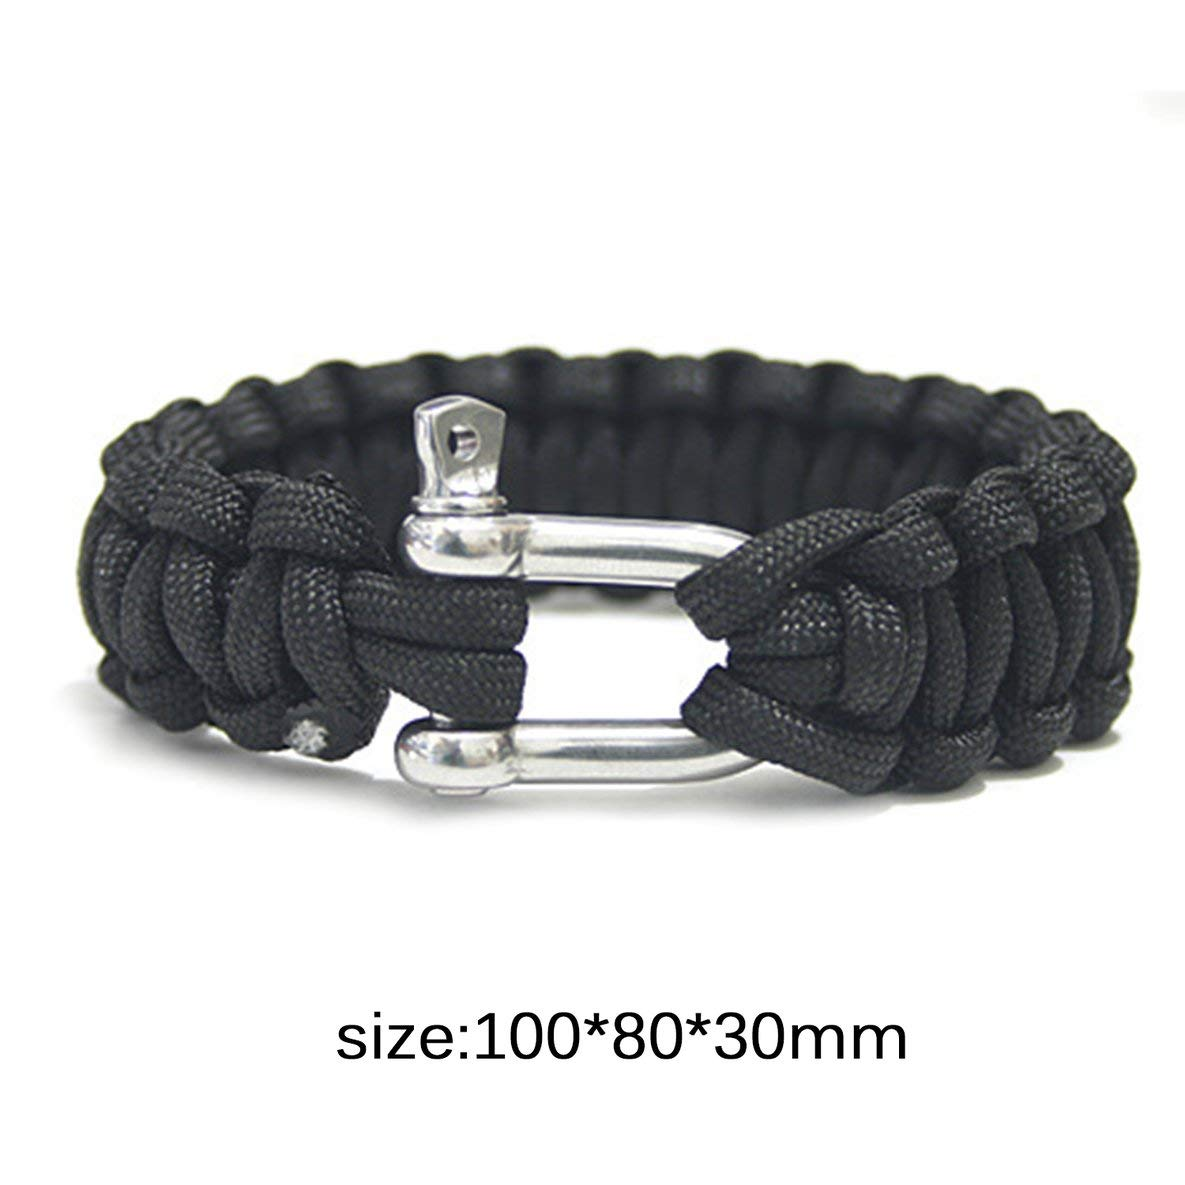 Noradtjcca Einstellbare Gr/ö/ße Schnalle Paracord Survival Armband Parachute Cord Armband Schnalle Whistle Camouflage F/ür Outdoor Camping Wandern